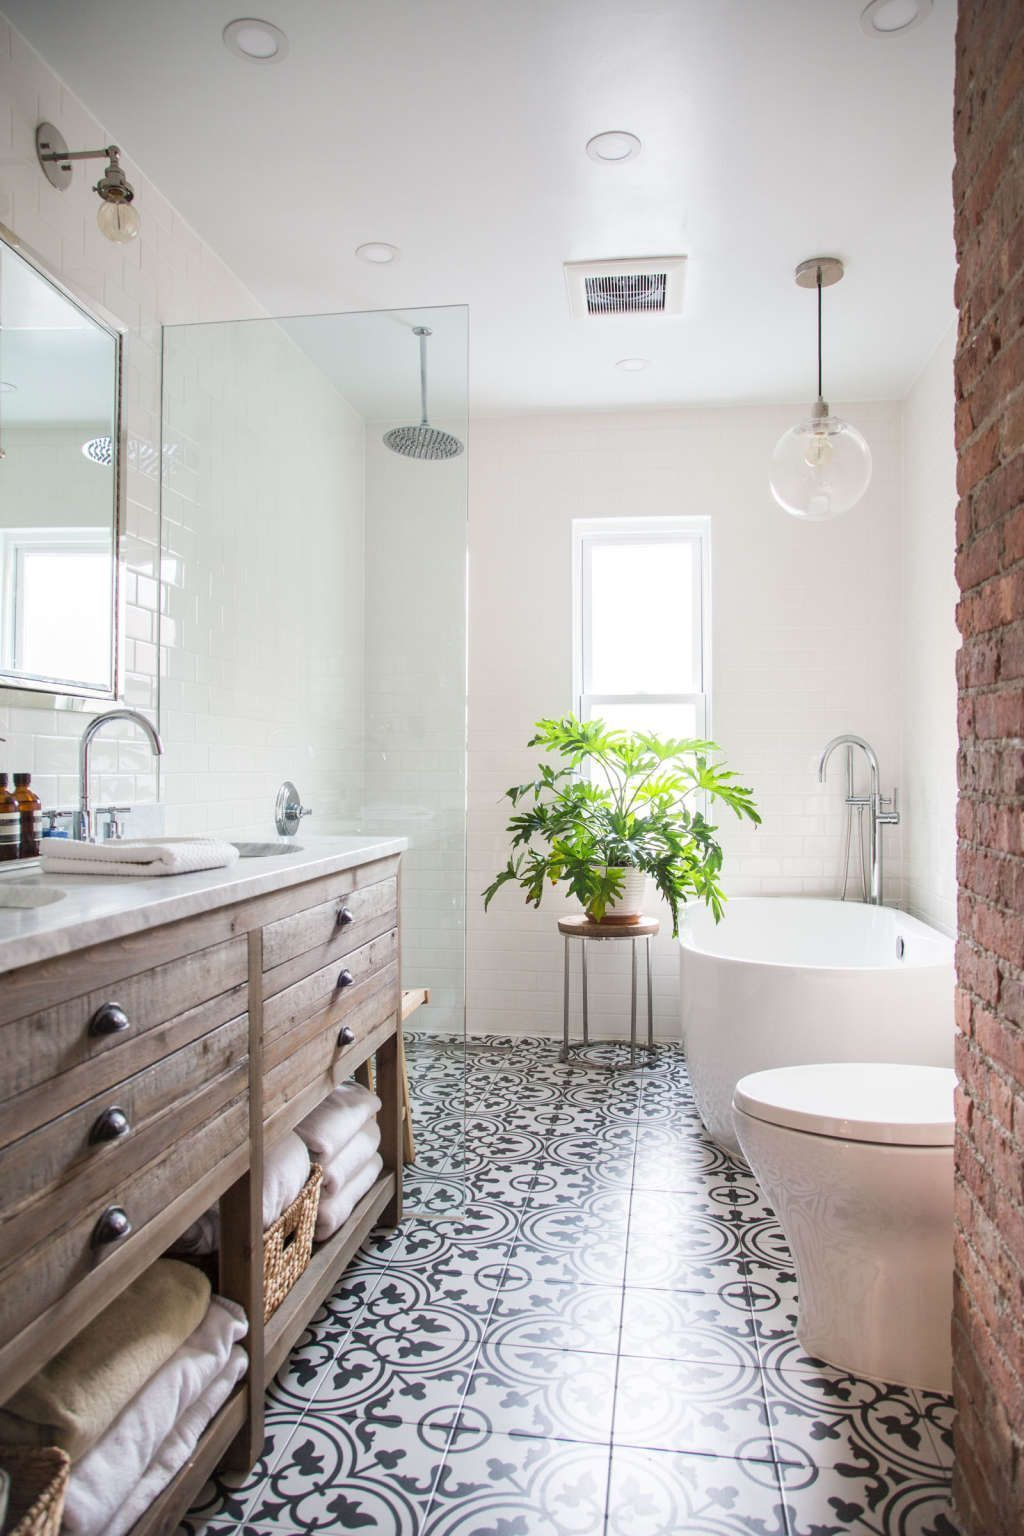 Rain Shower Heads Are Popular In High End Spa Hotel Bathrooms But Read Up Bathroom Remodel Master Farmhouse Bathroom Decor Modern Farmhouse Bathroom